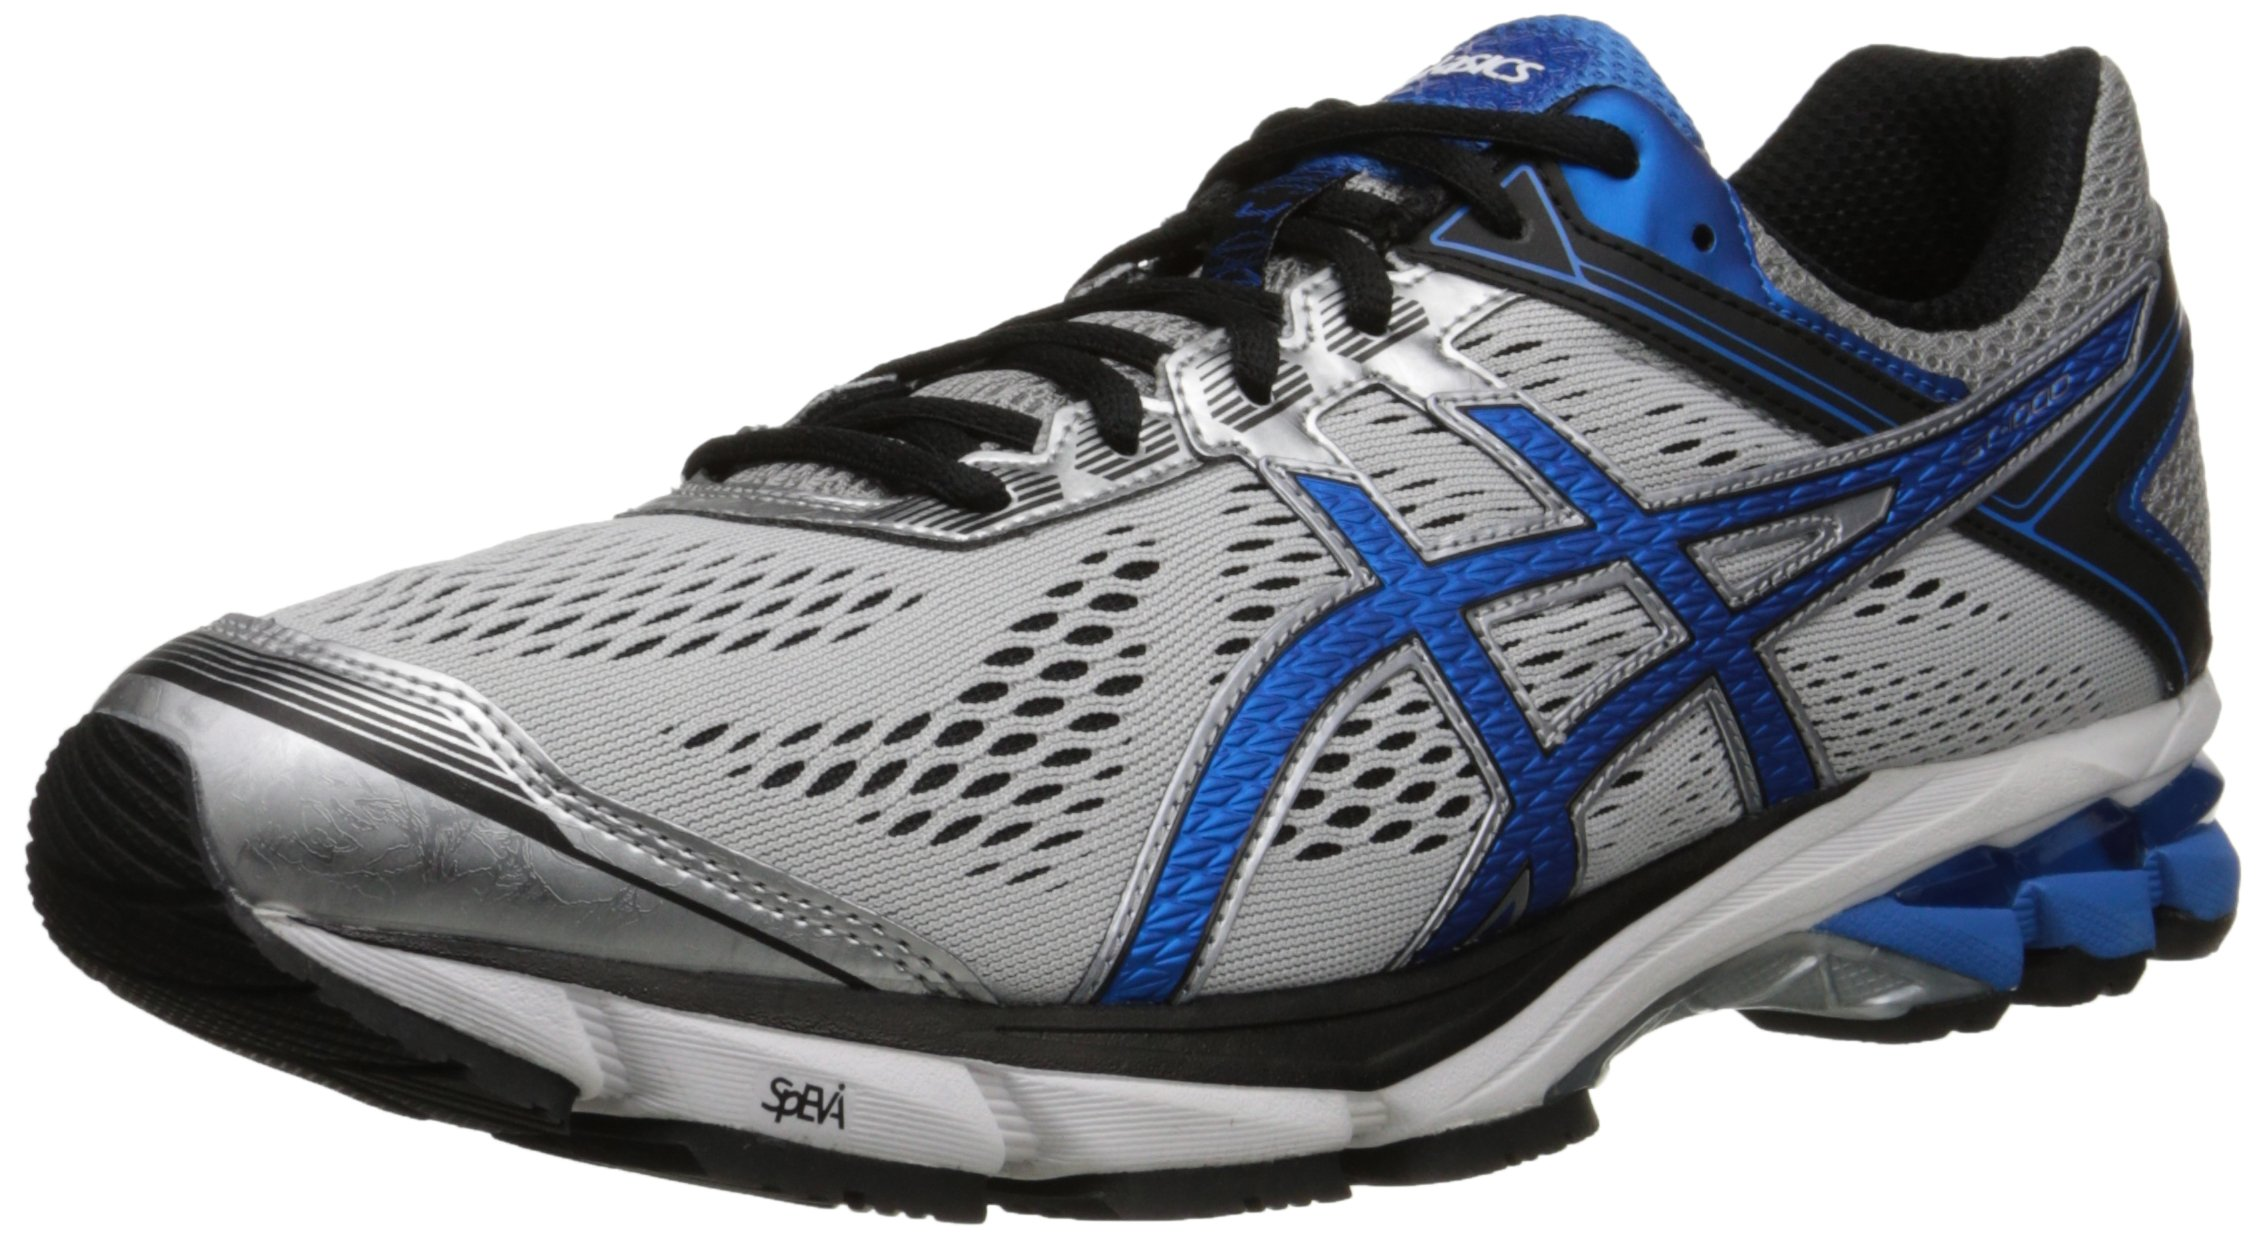 ASICS Men's GT 1000 4 Running Shoe, Silver/Electric Blue/Black, 10